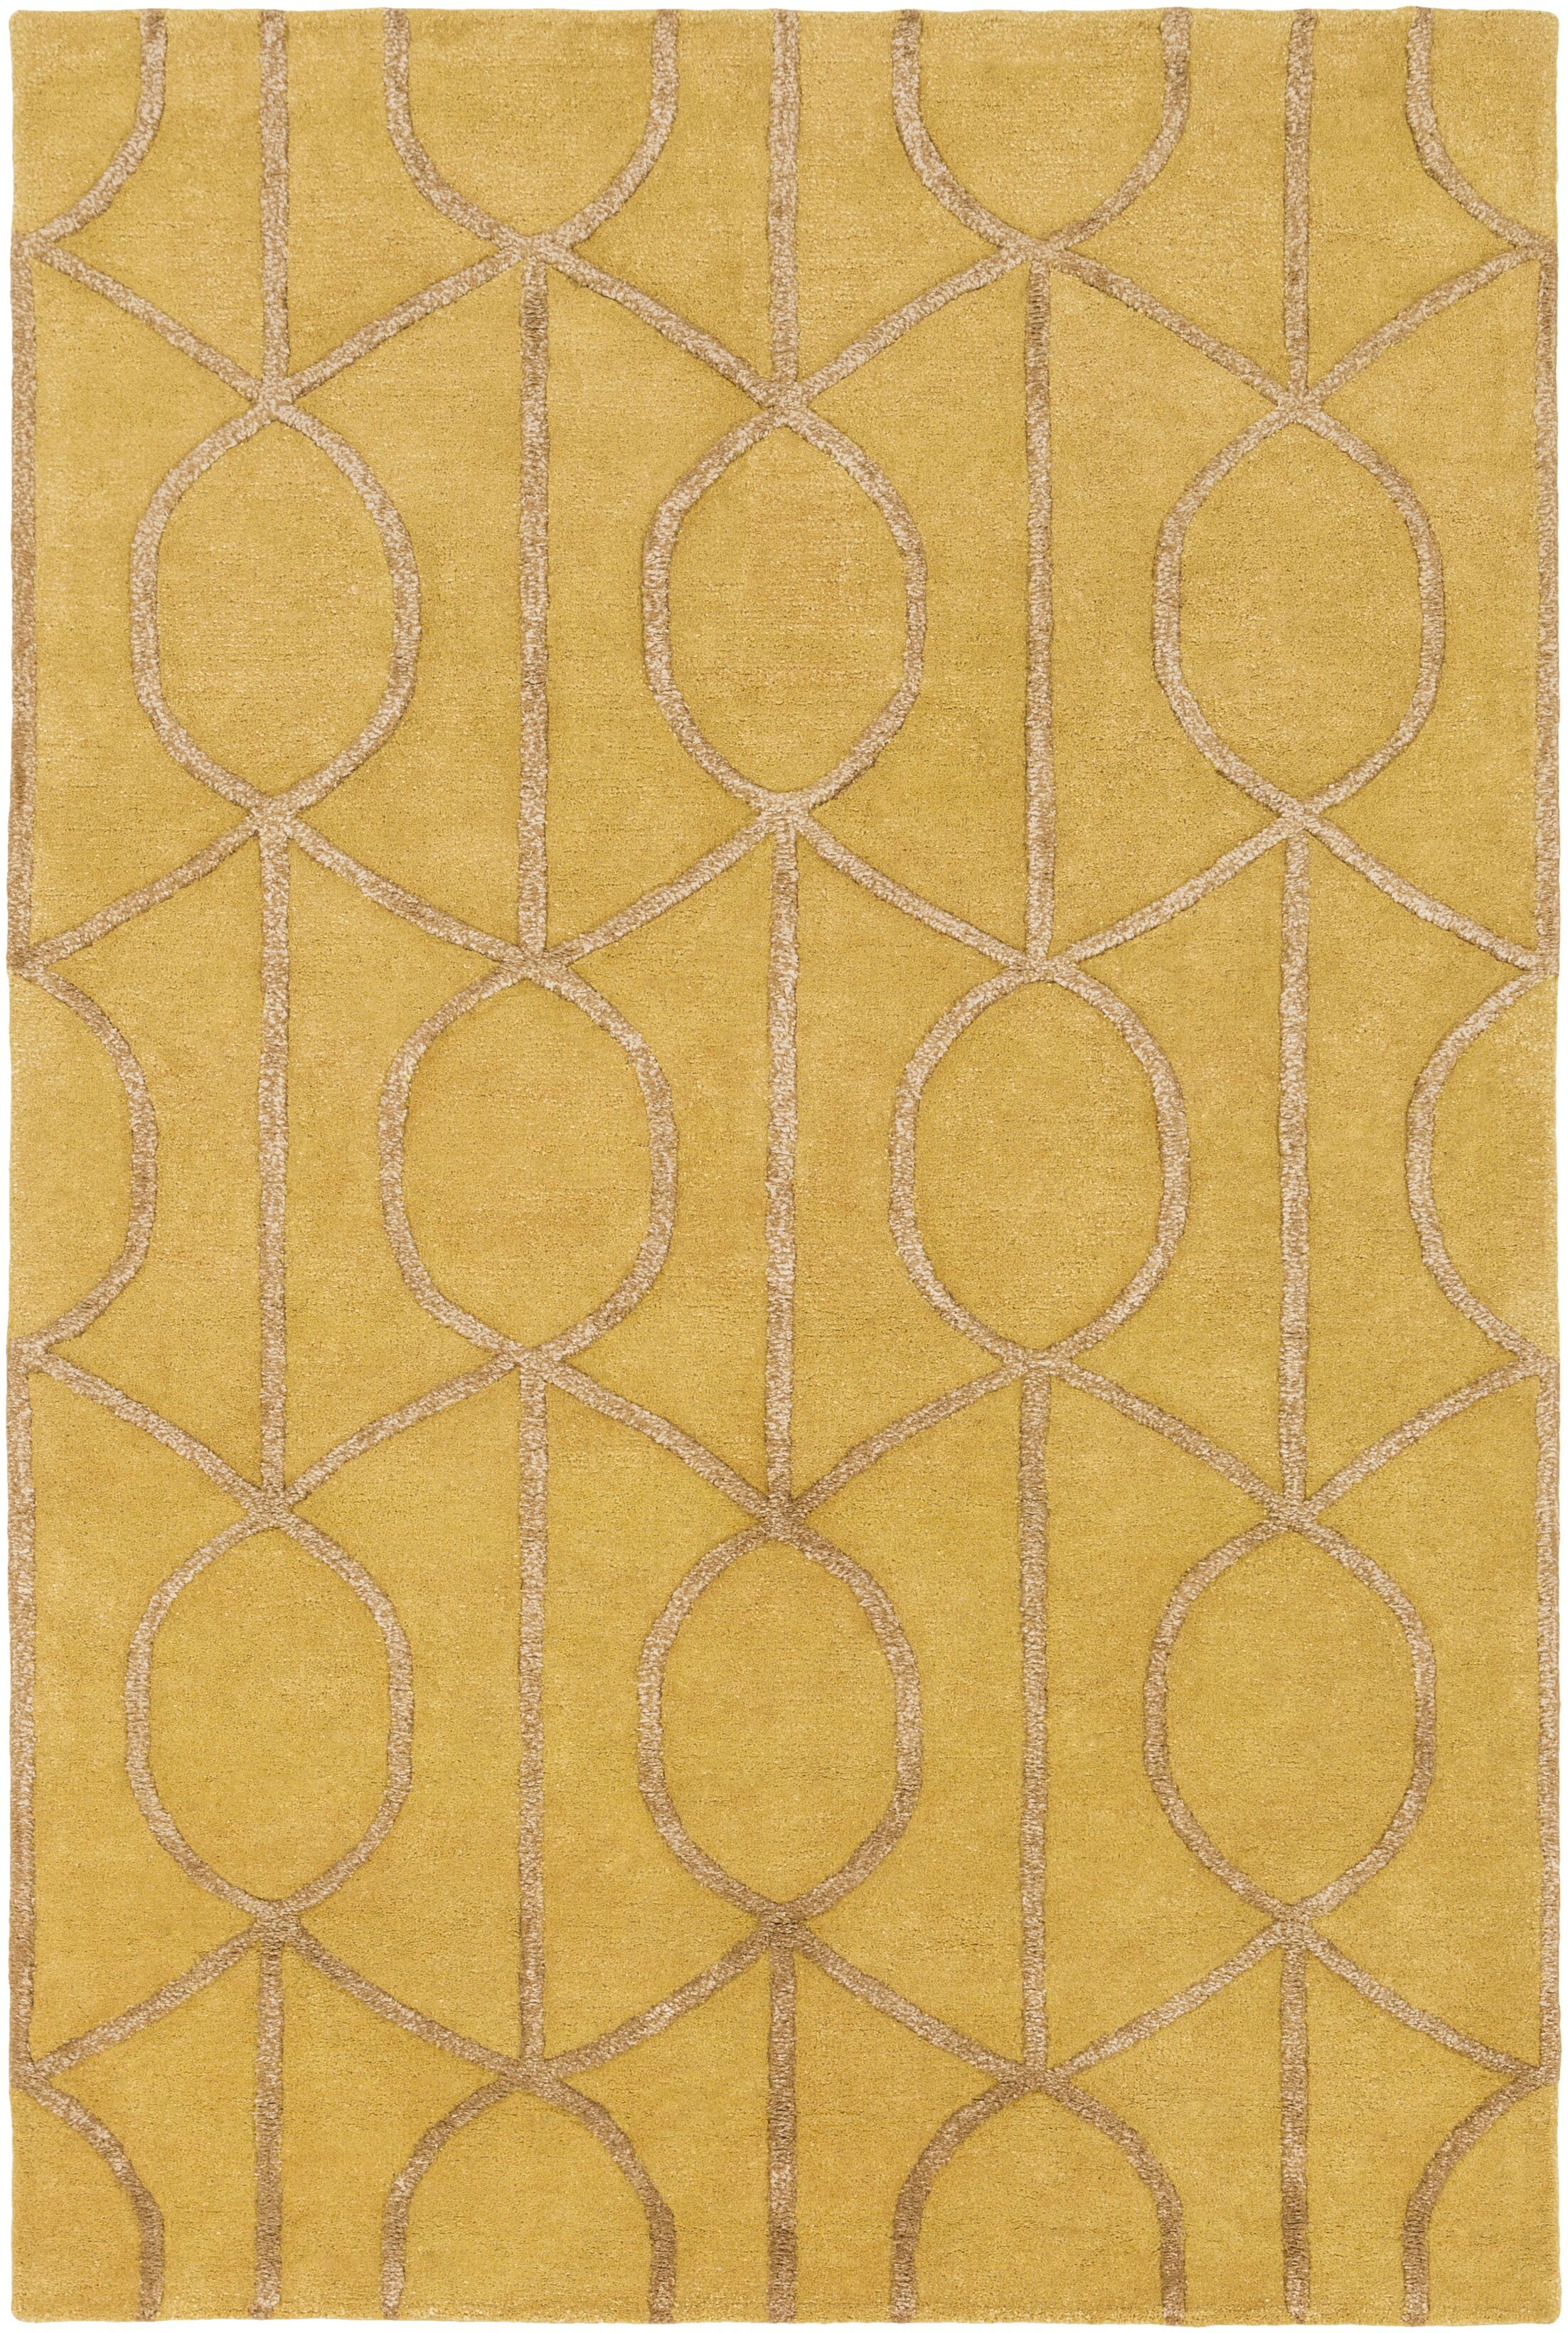 Abbey Hand-Tufted Gold Area Rug Rug Size: Round 3'6